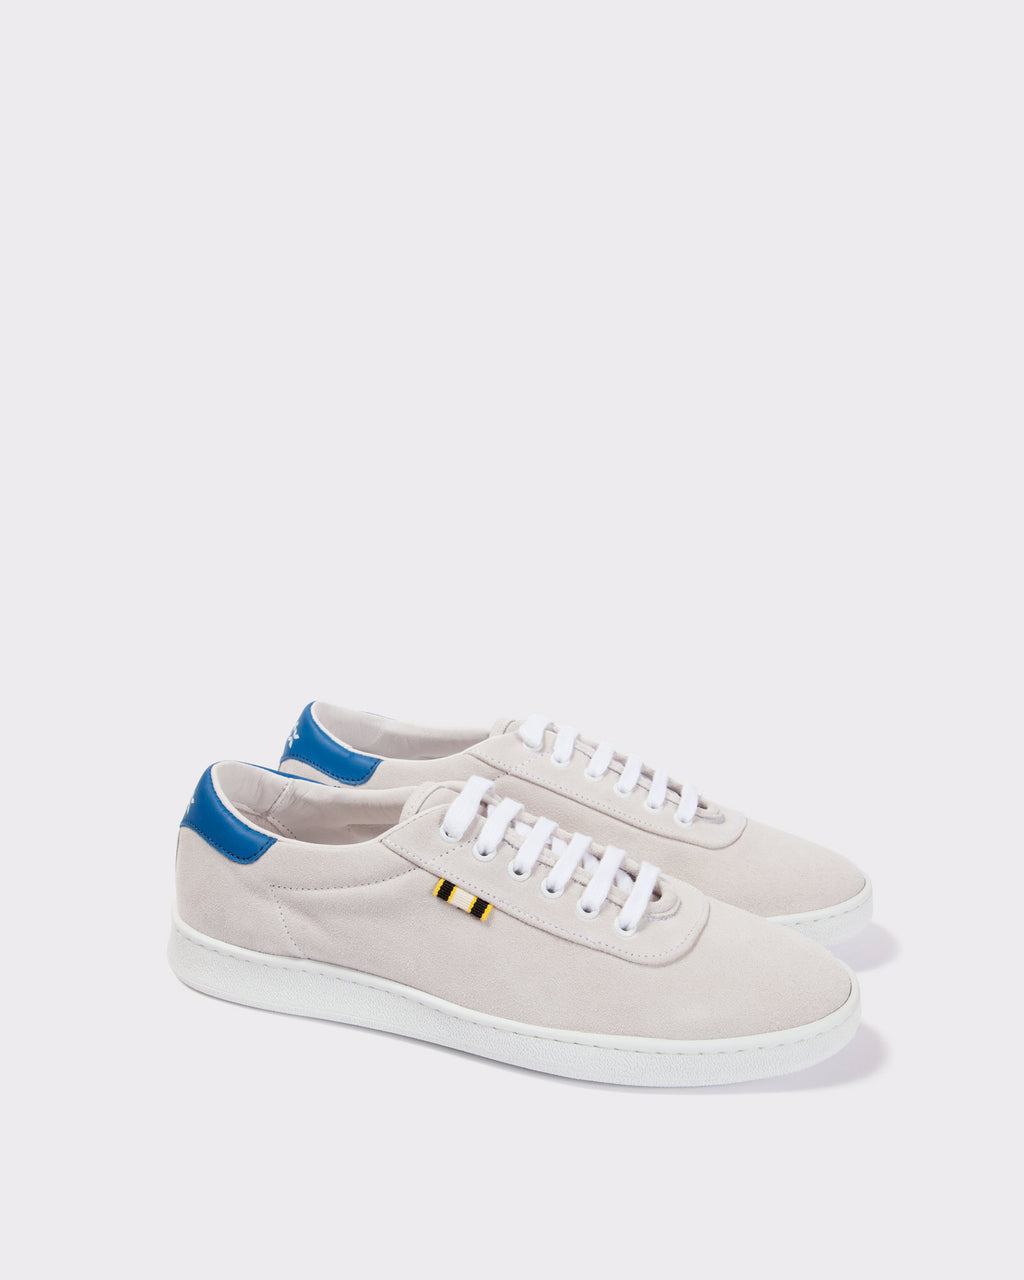 APR002 - Suede - White/Blue